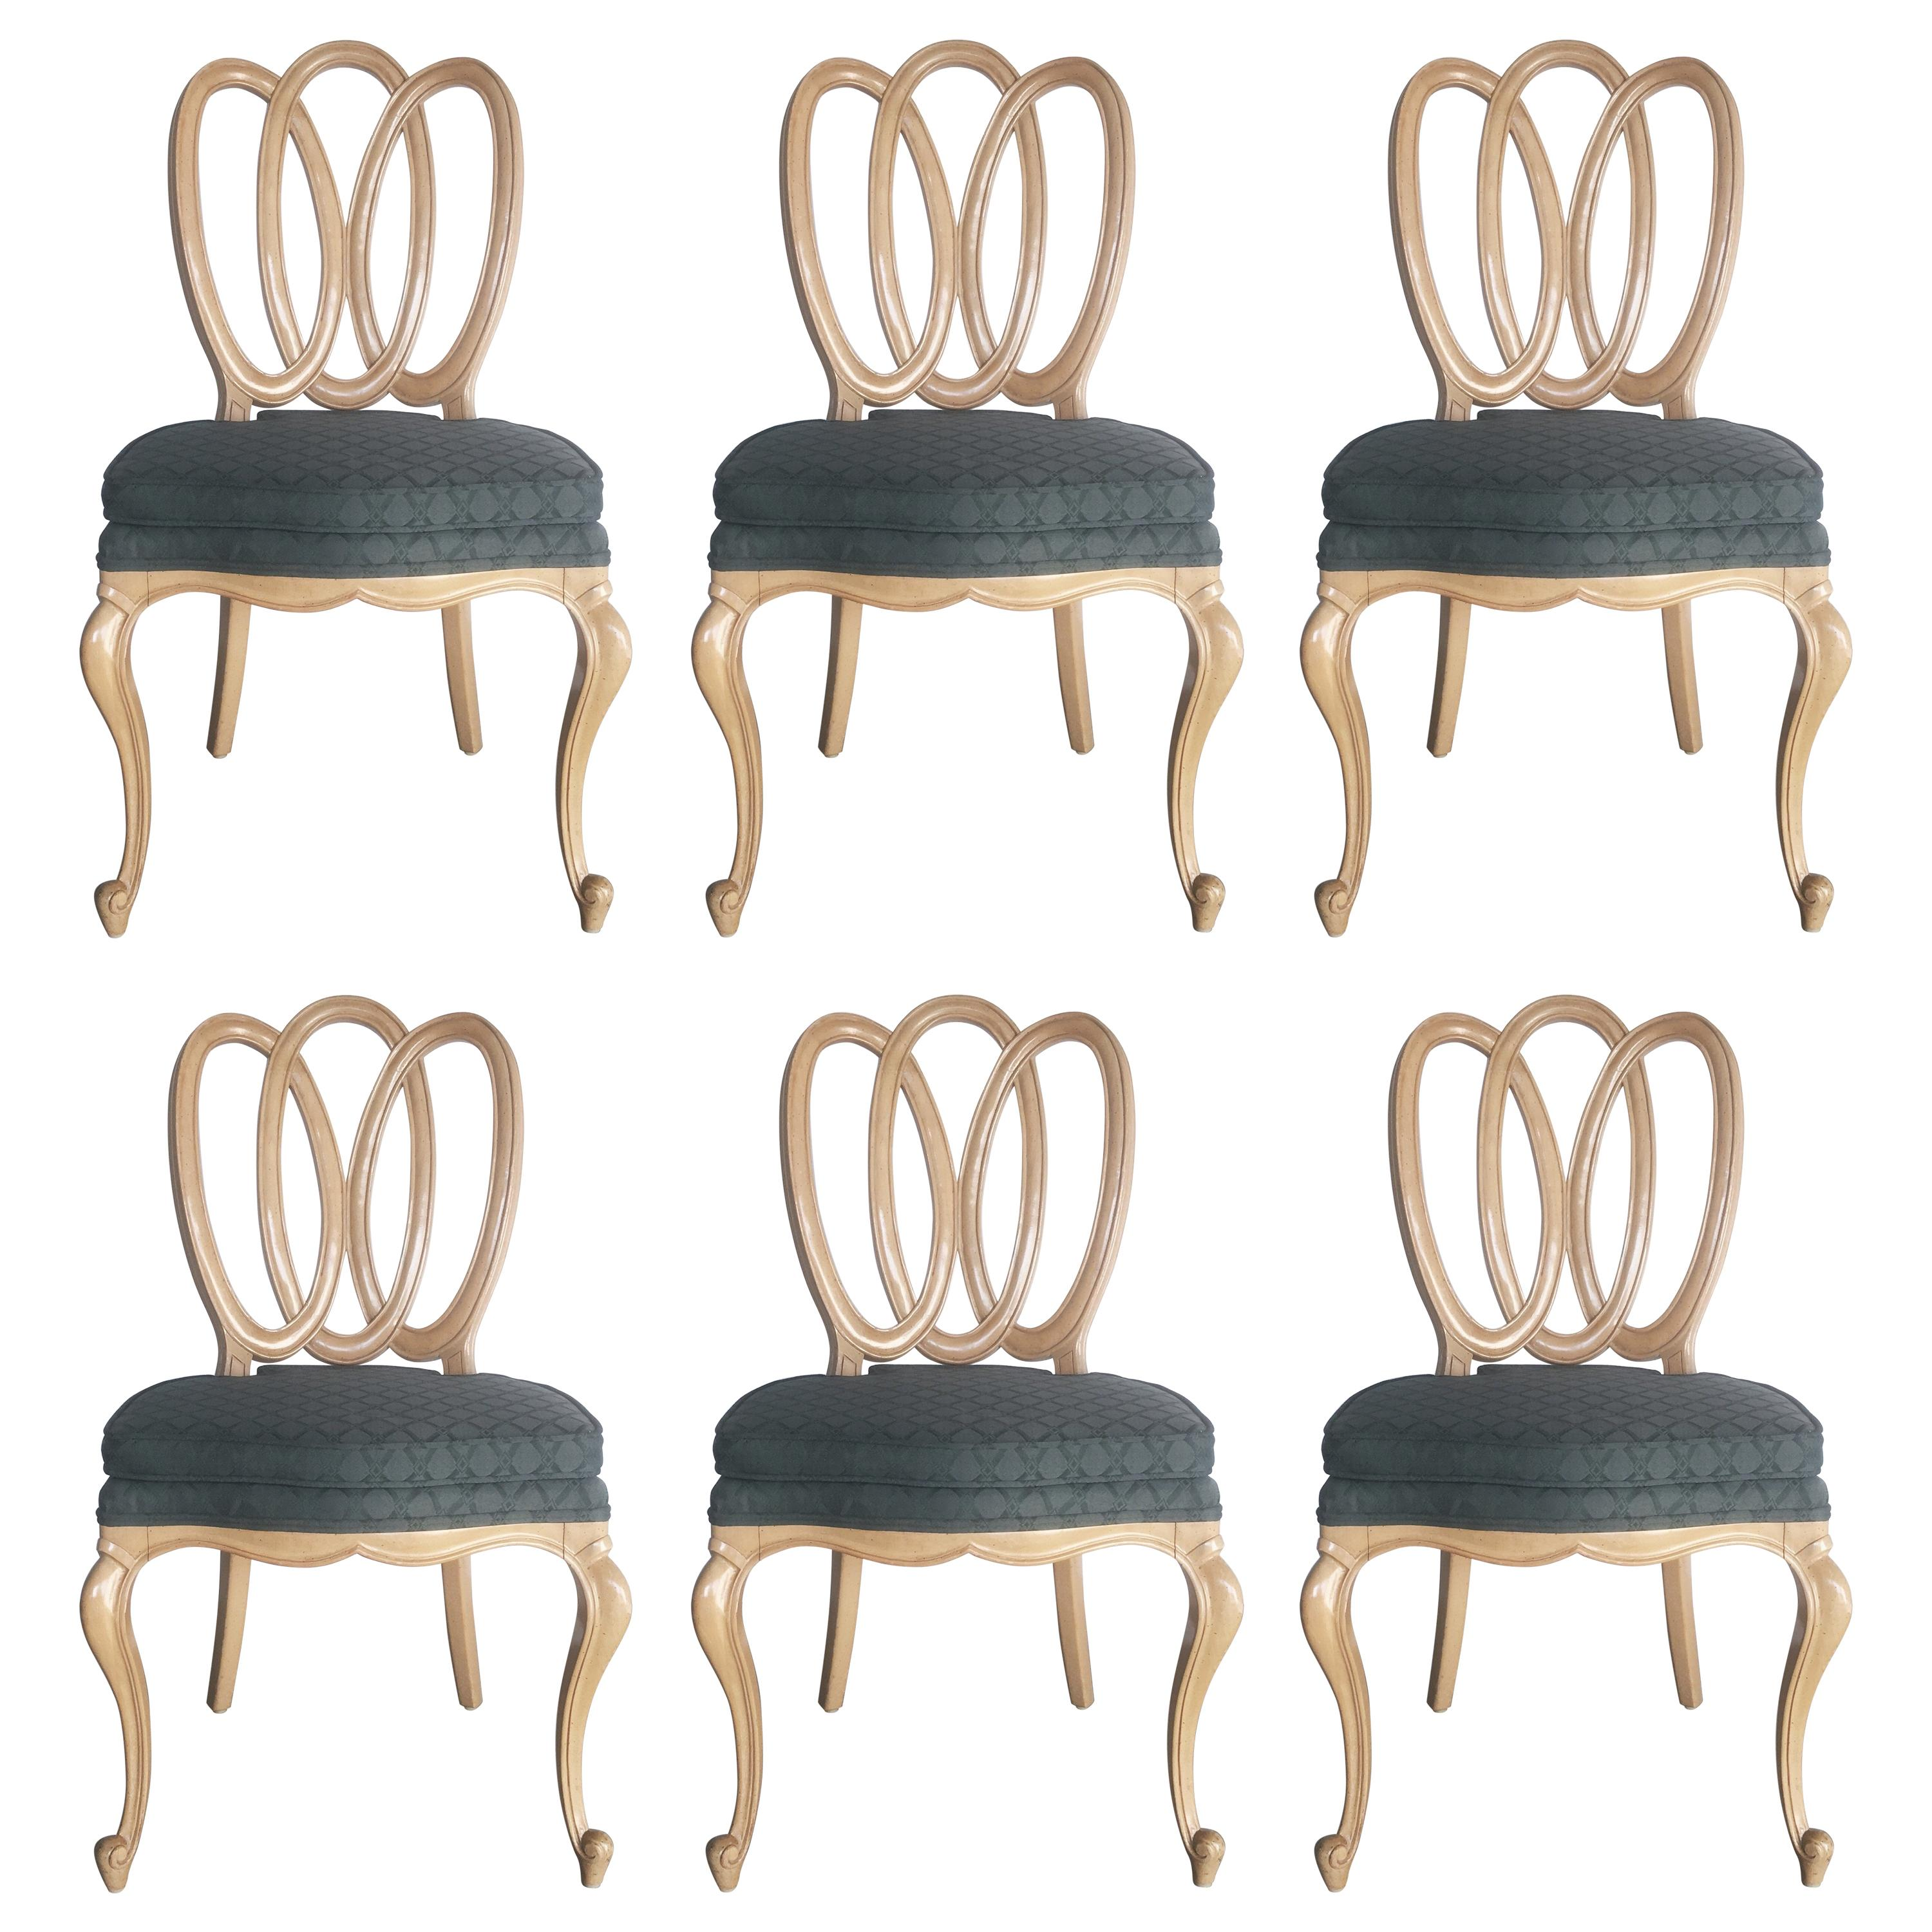 1950s Set of Six Vintage French Provincial Pretzel Ribbon Back Dining Chairs